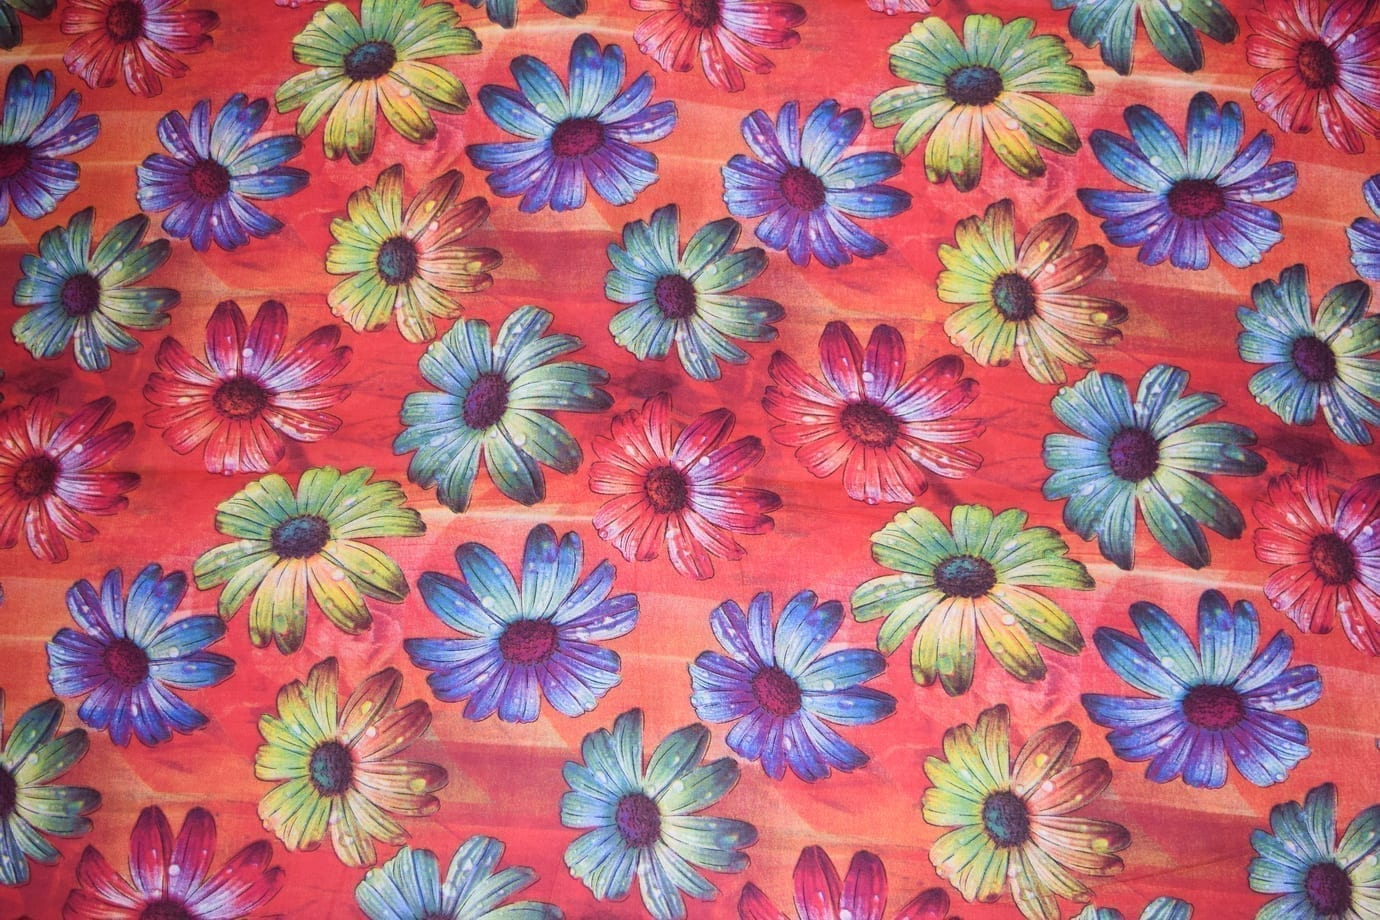 100% PURE Soft COTTON PRINTED FABRIC PC305 2